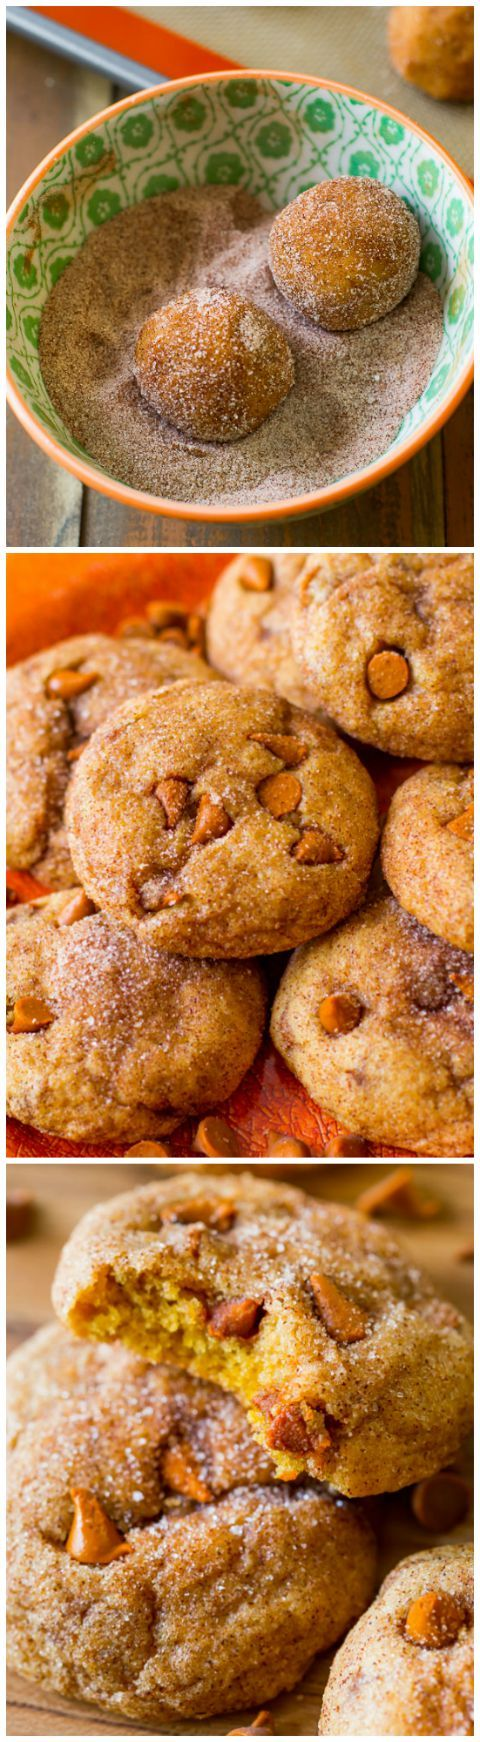 Cinnamon Chip Pumpkin Cookies have unbeatable spiced pumpkin flavor-- so easy with no mixer! Chewy, not cakey!